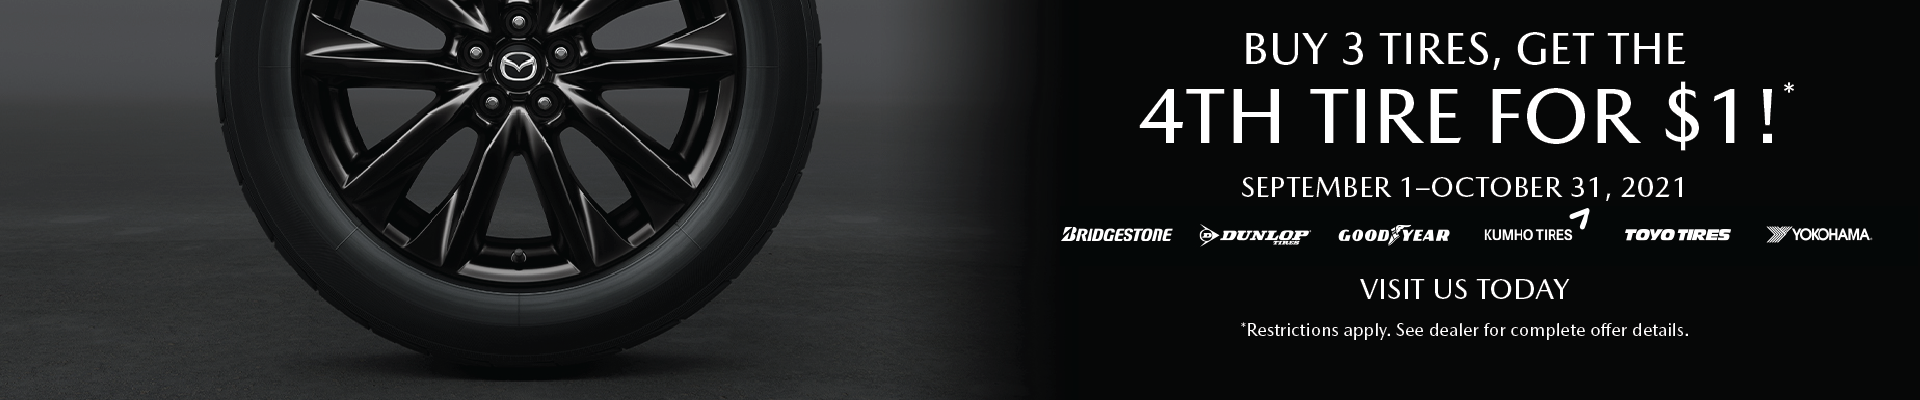 Buy 3 Tires, Get 4th Tire for $1.